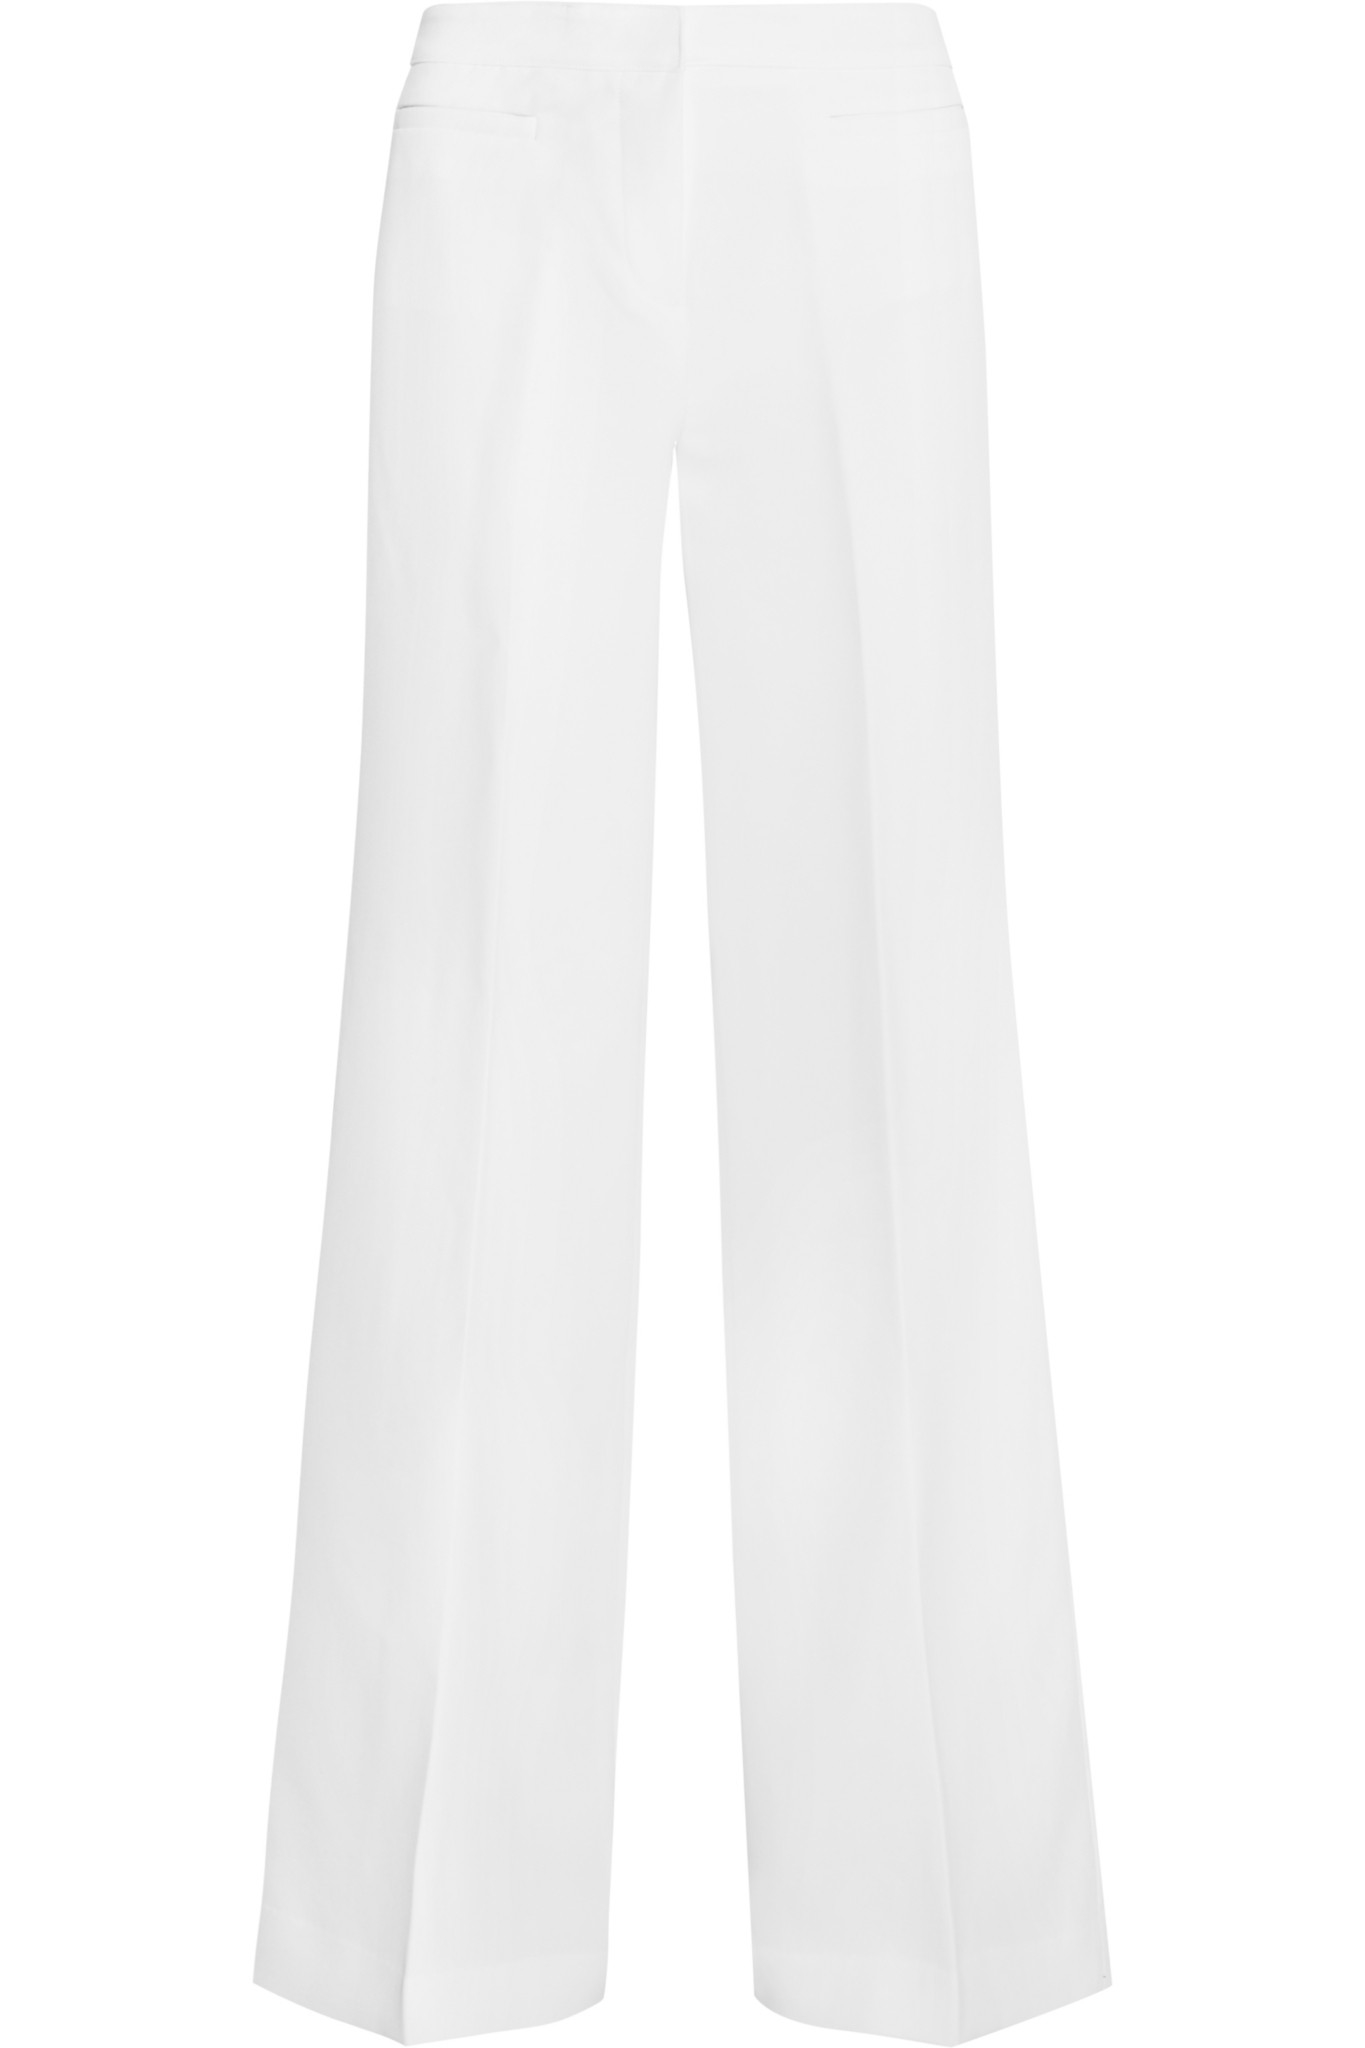 Michael michael kors Stretch-crepe Wide-leg Pants in White | Lyst